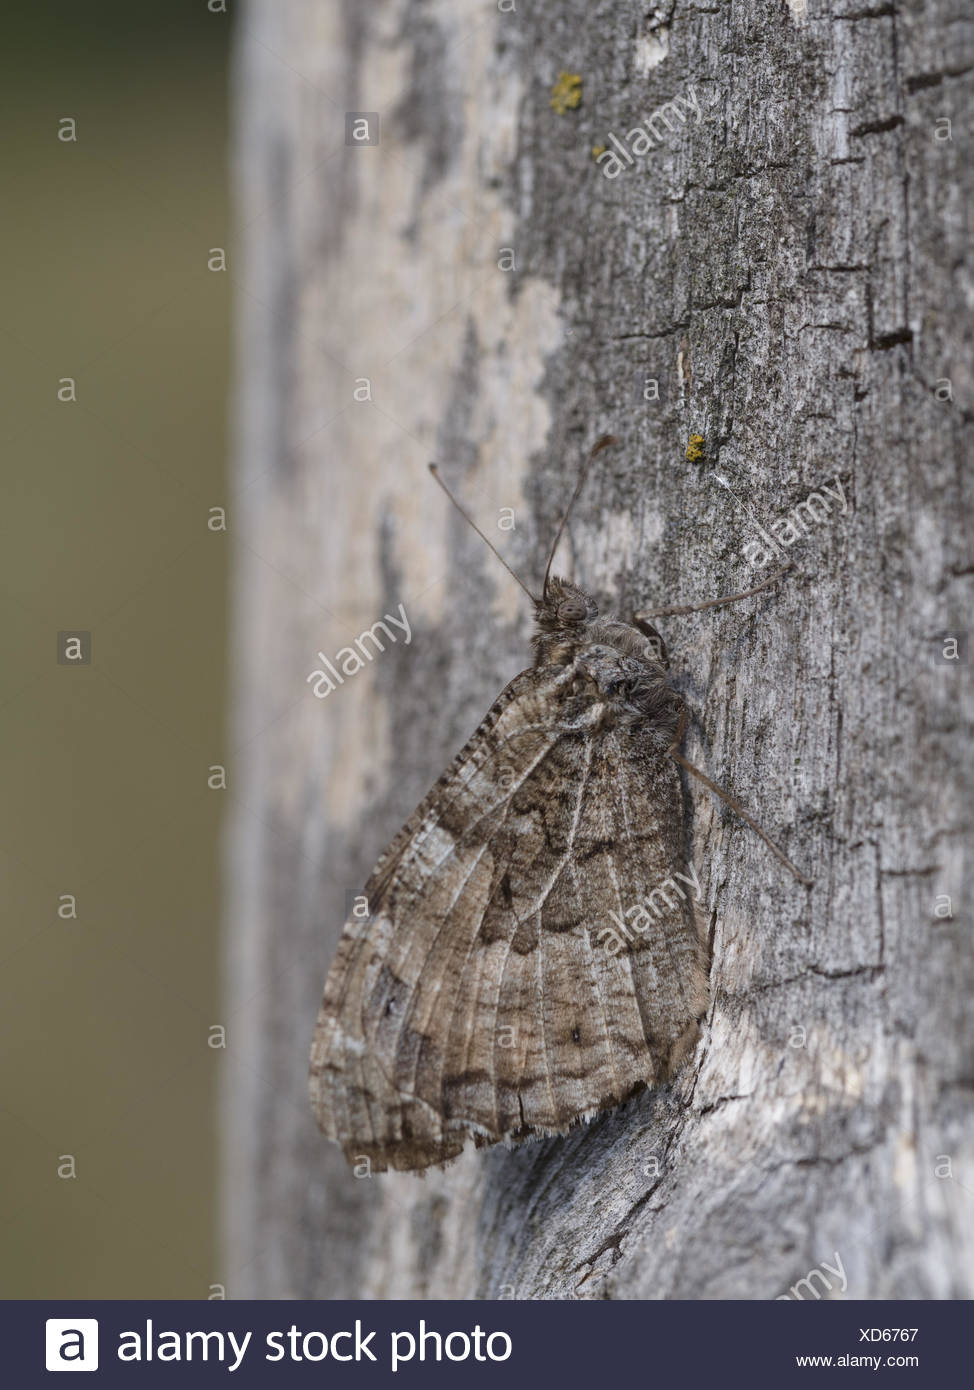 Grayling (Hipparchia semele) - Stock Image